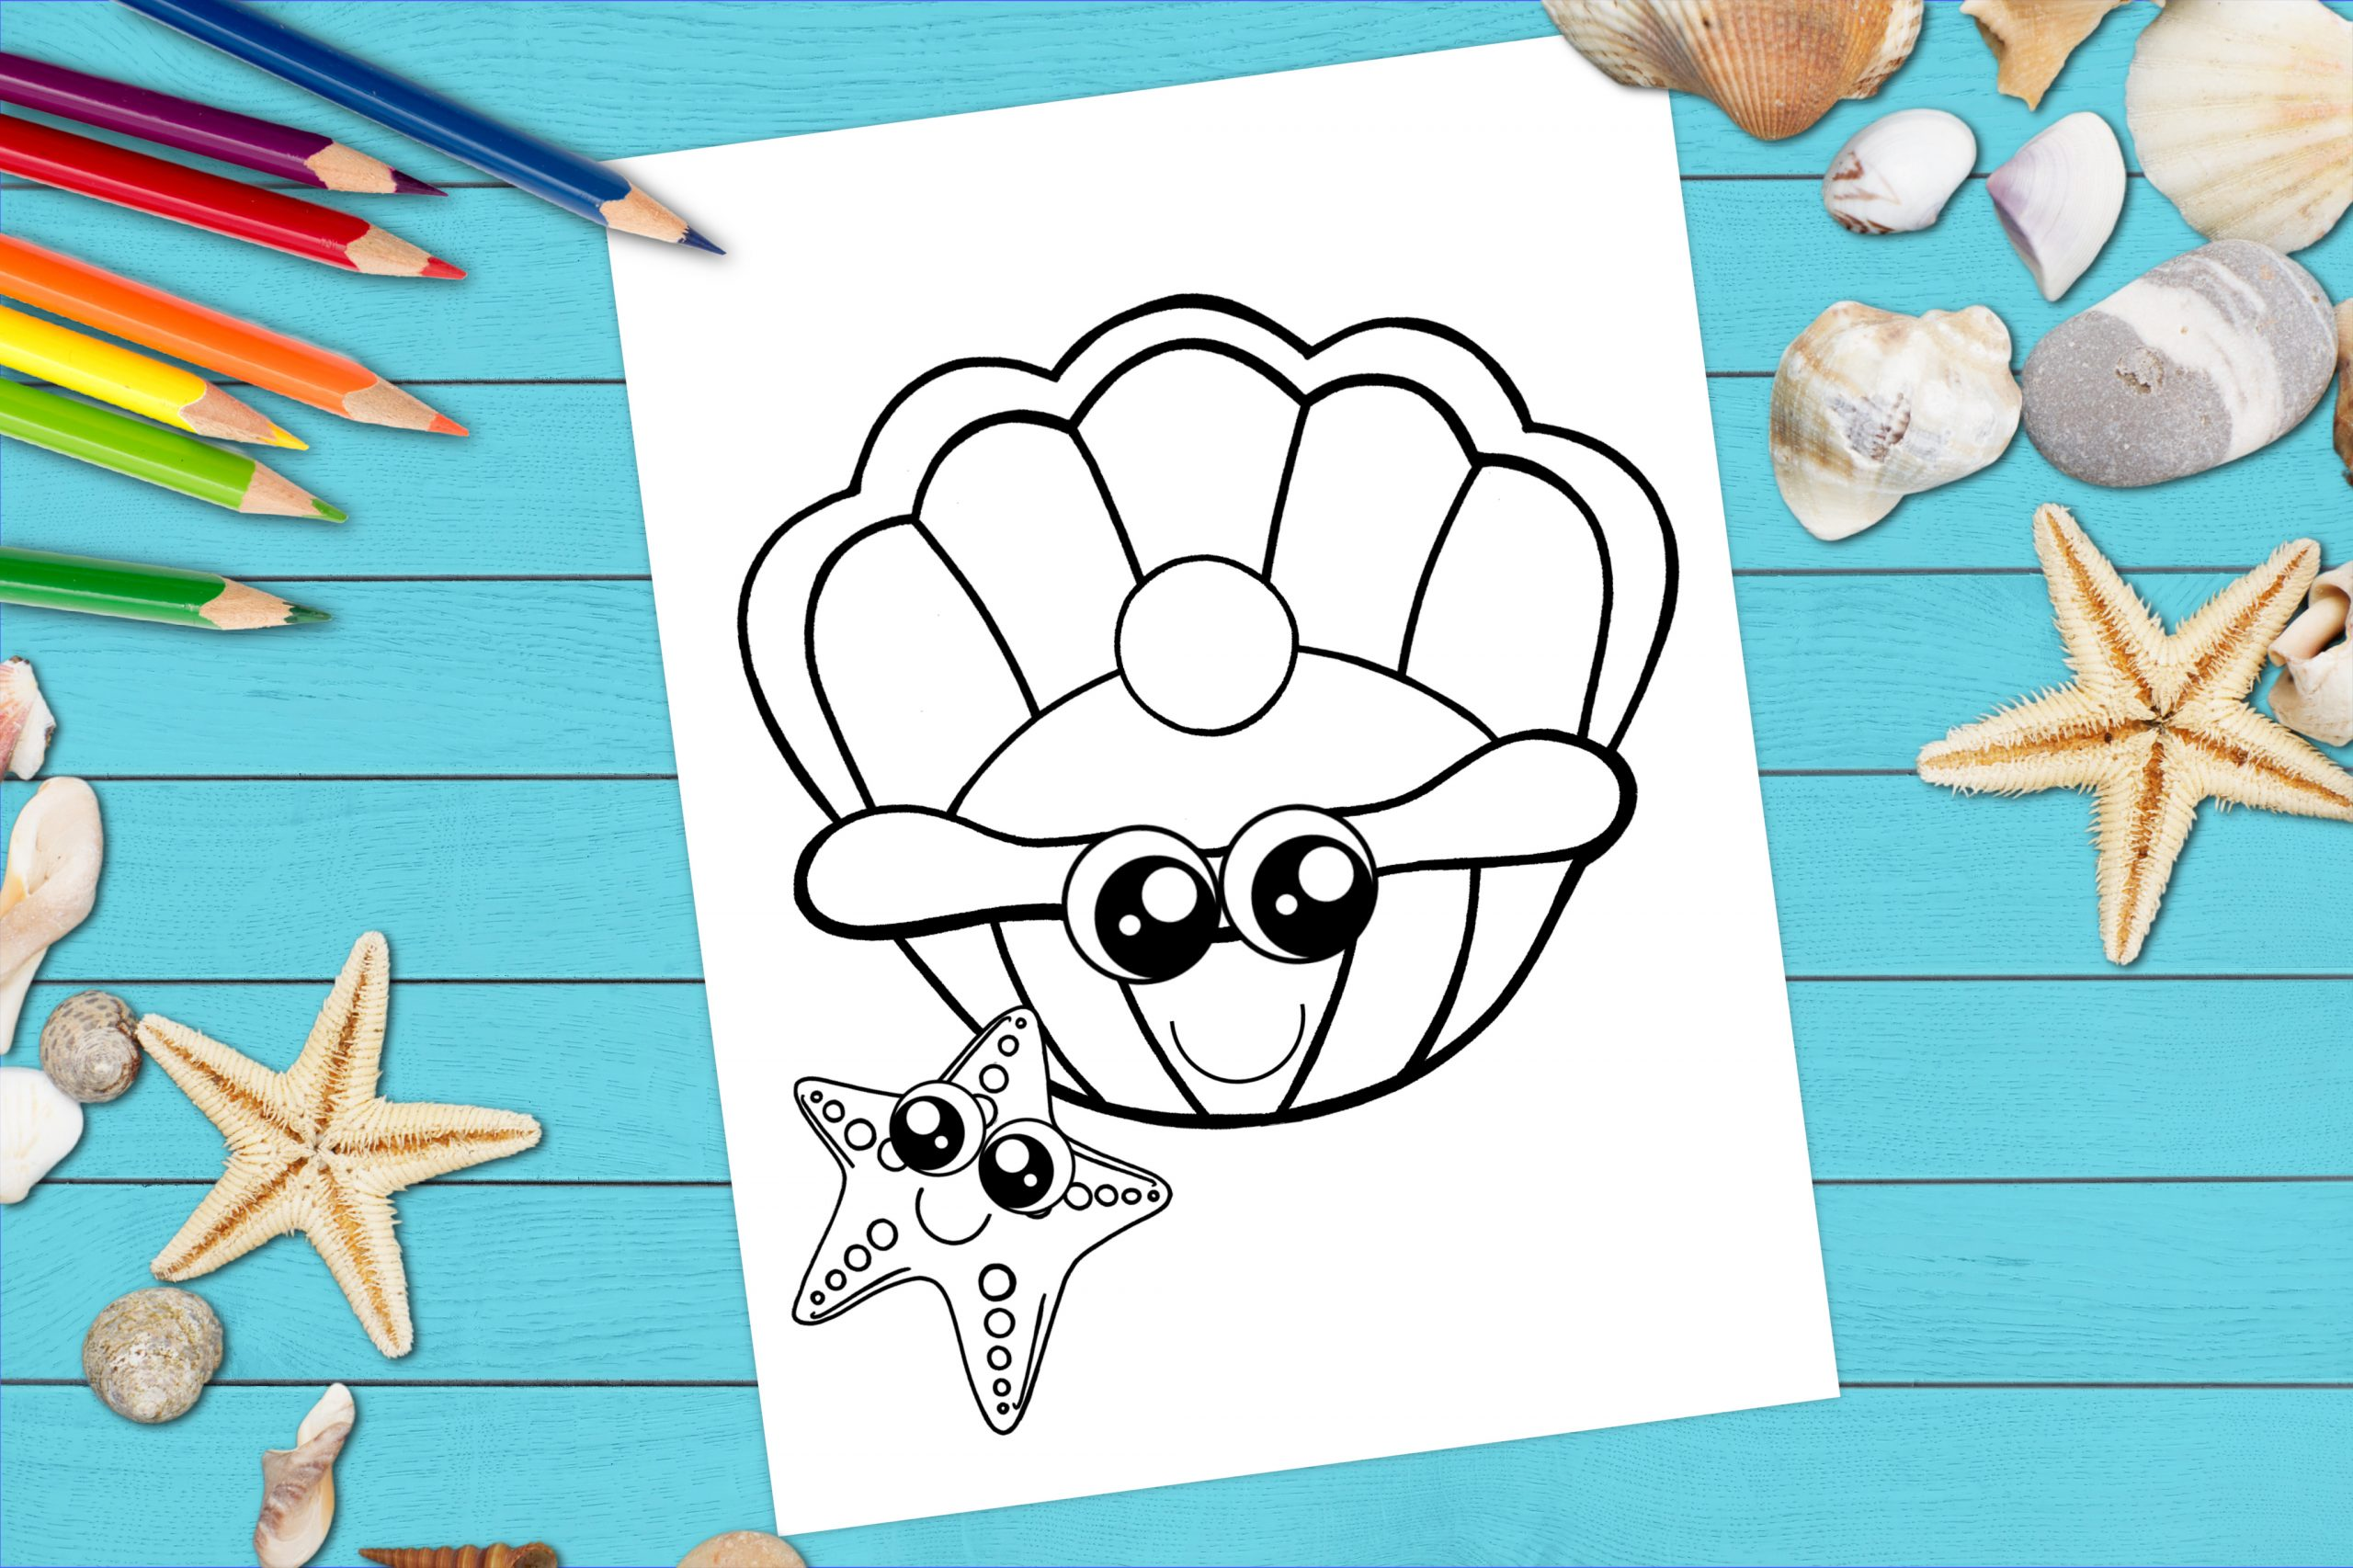 Free Printable Clam Shell Ocean Animal Coloring Page for kids